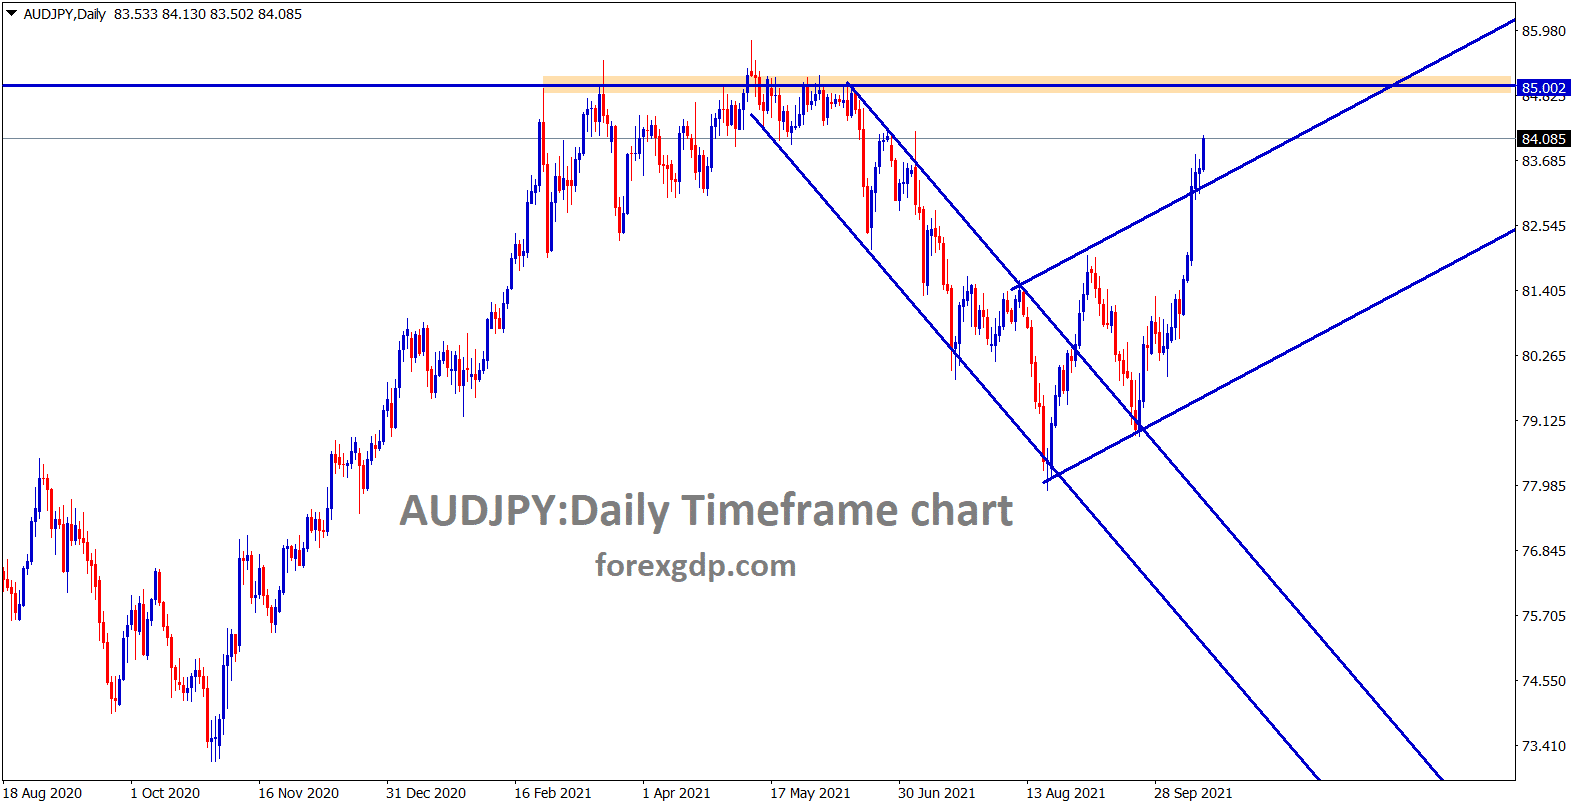 AUDJPY is moving up stronger after breaking the channel line